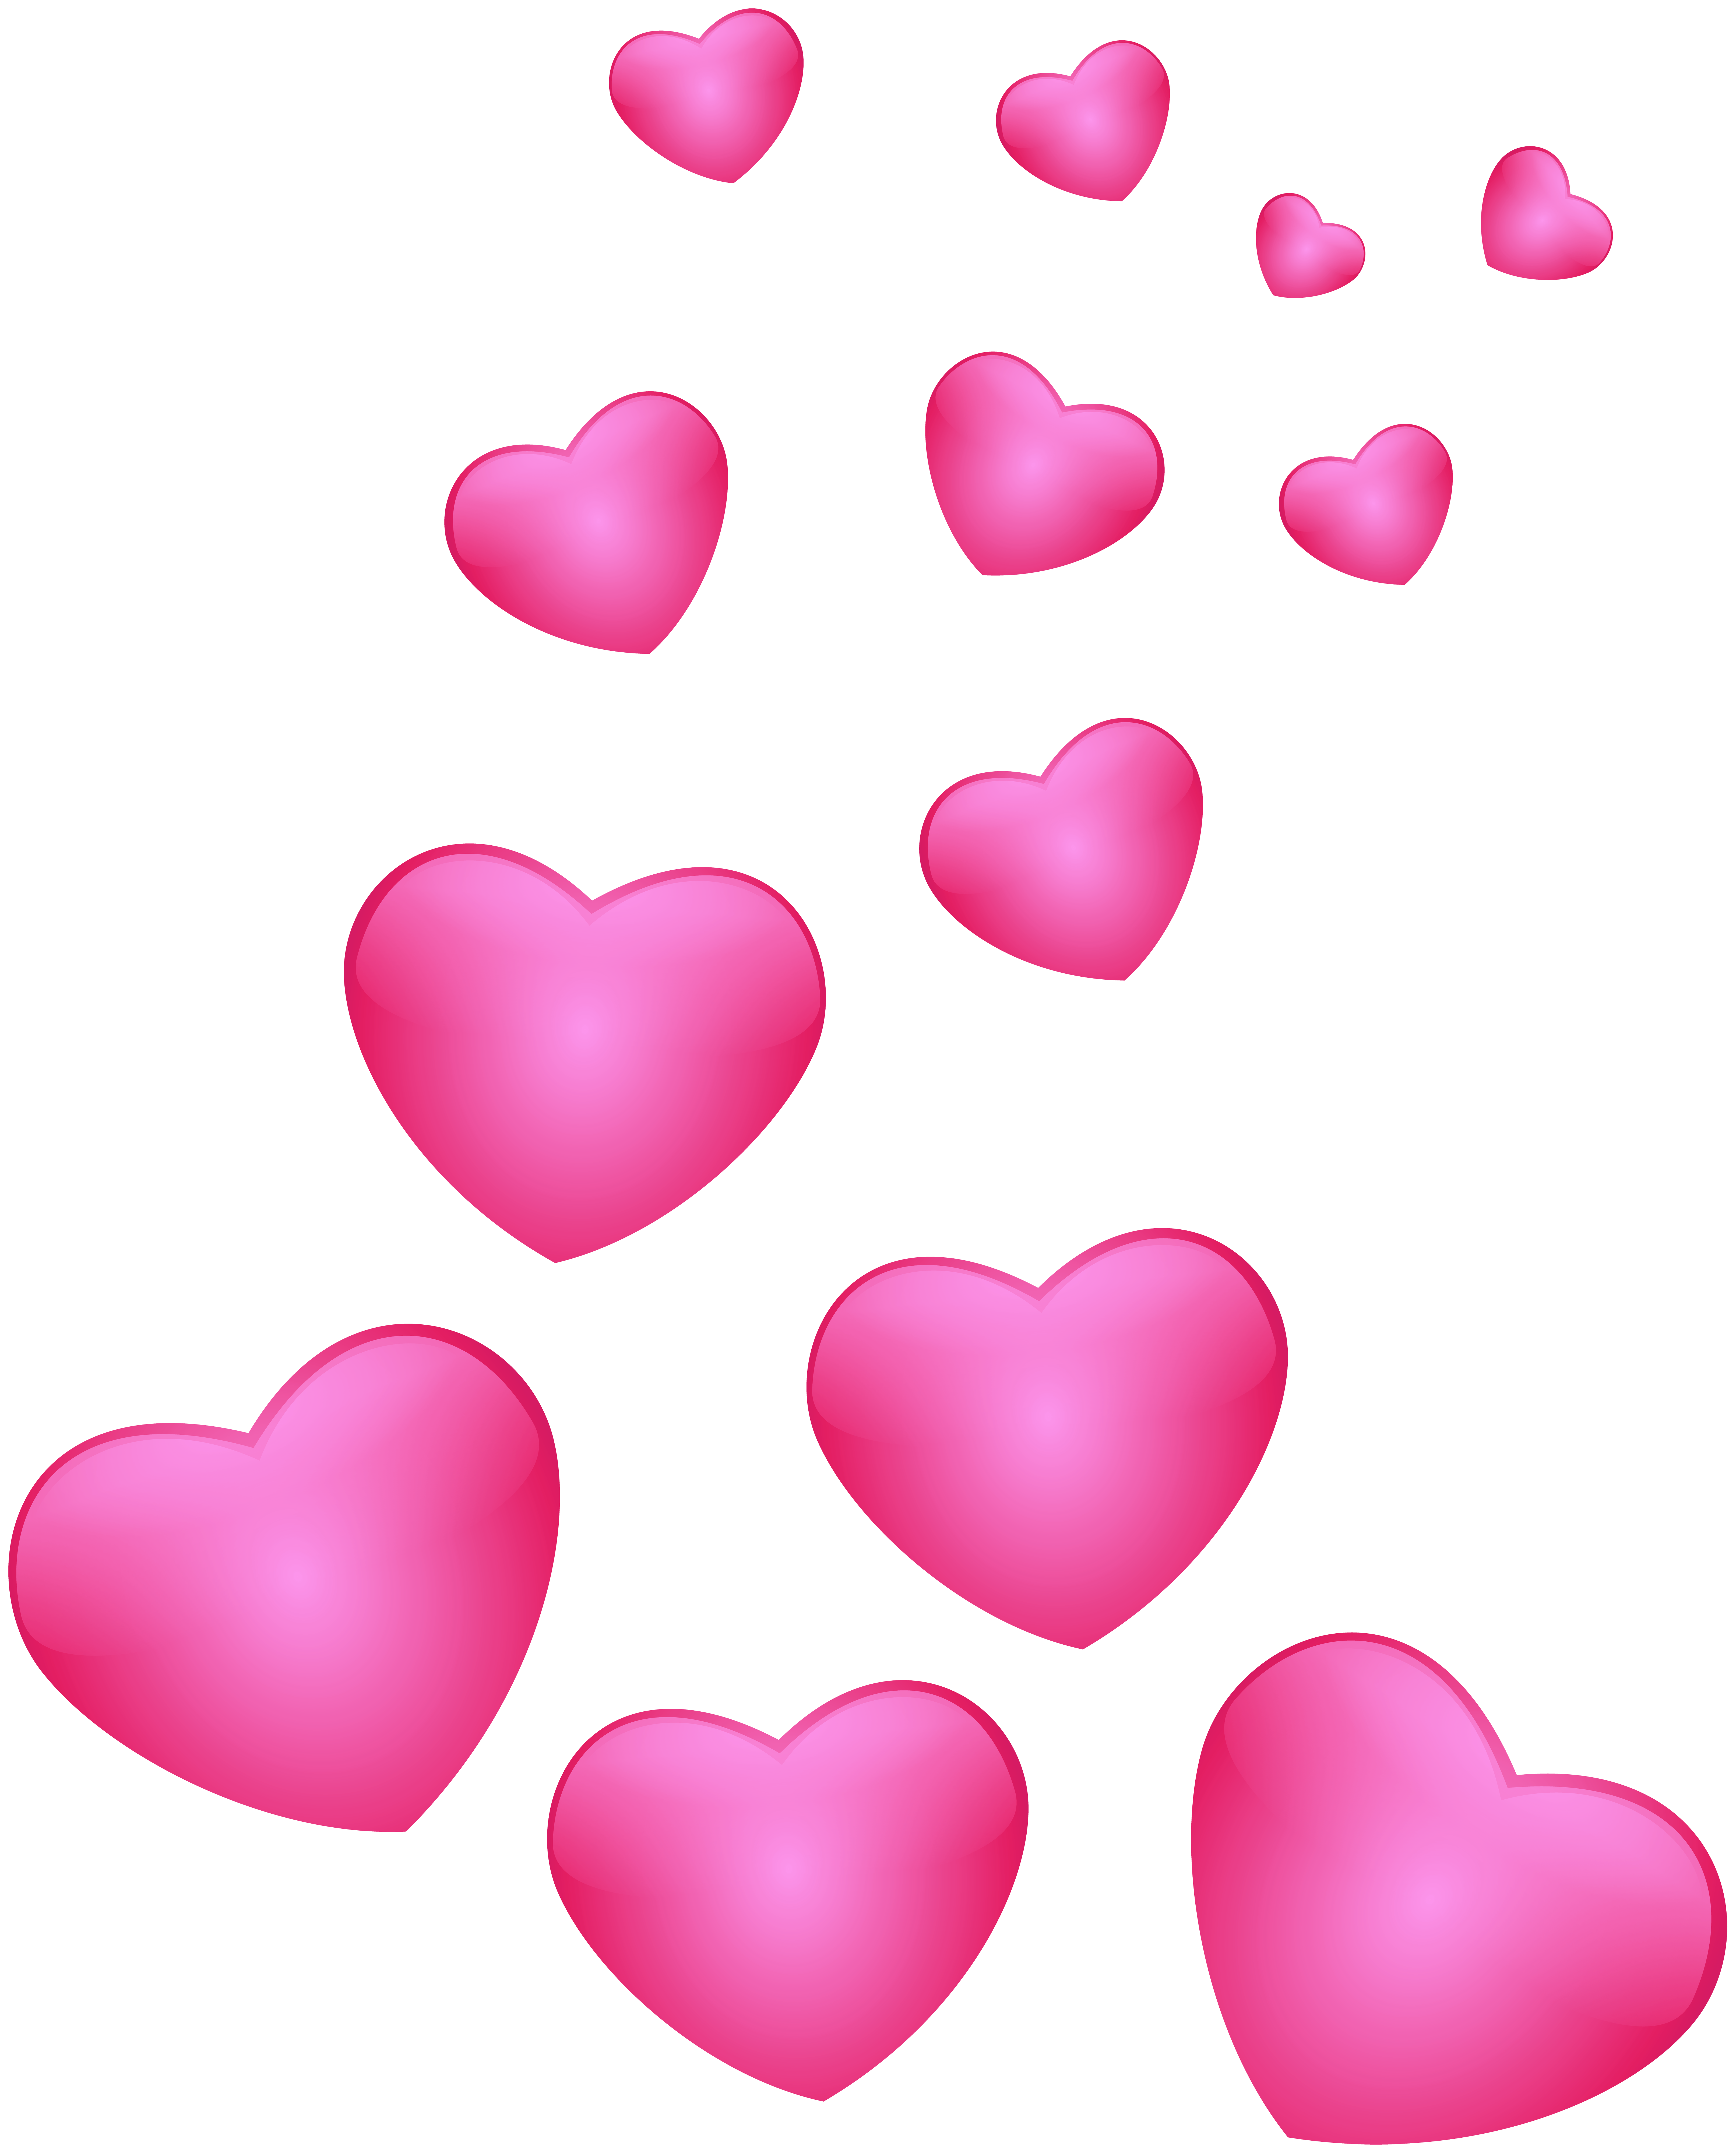 Floating hearts png. Pink clip art image